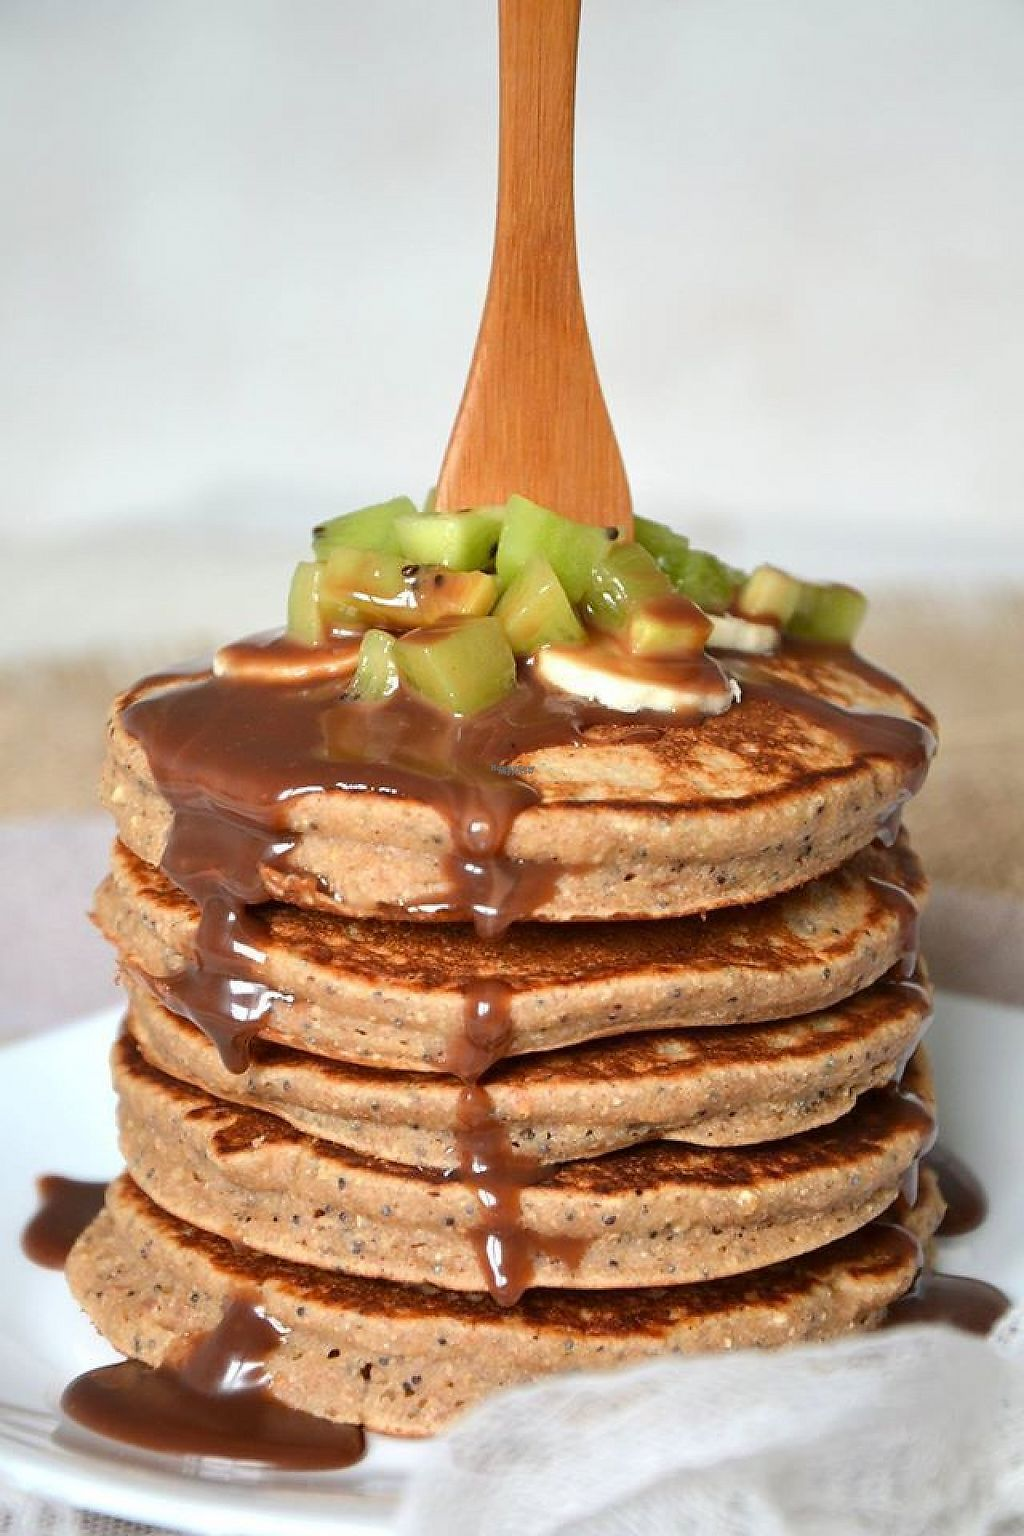 """Photo of La Vie Claire  by <a href=""""/members/profile/community"""">community</a> <br/>vegan pancakes  <br/> February 4, 2017  - <a href='/contact/abuse/image/72026/221879'>Report</a>"""